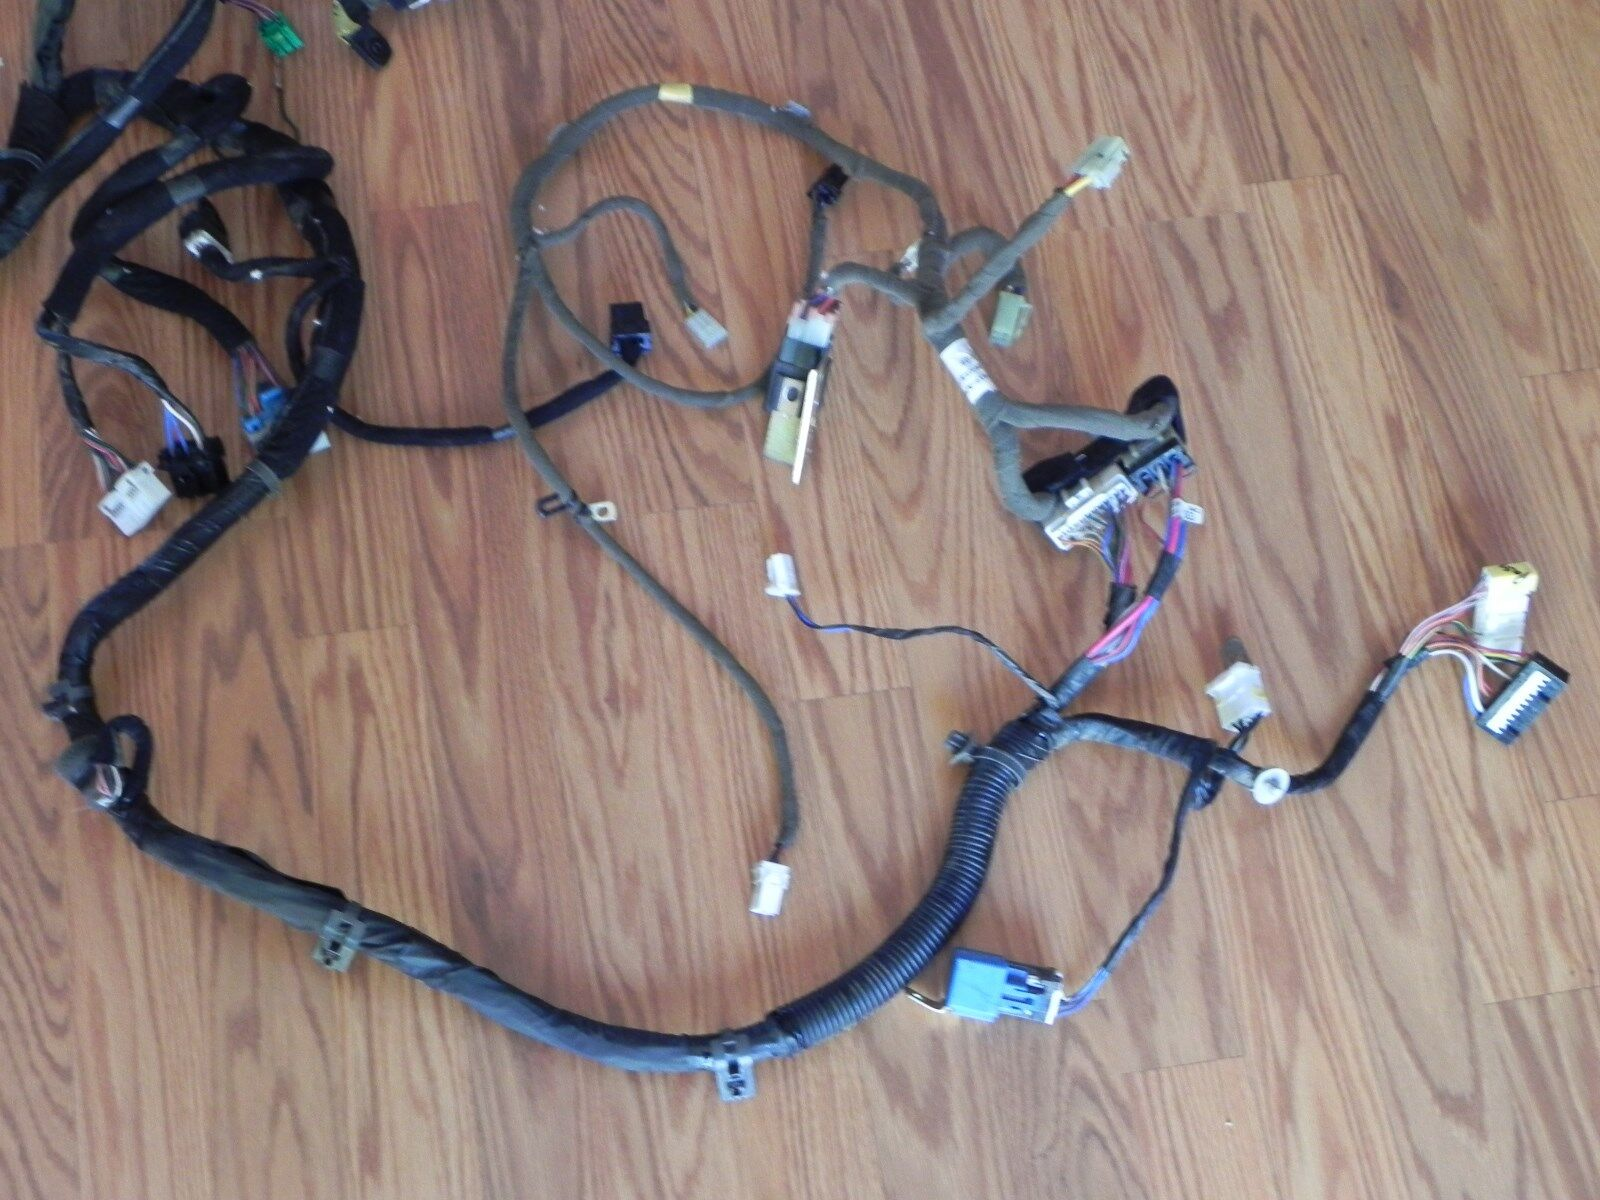 Used Hyundai Dash Parts For Sale Page 30 Sonata Fuse Box 2004 Santa Fe 27l 4wd Interior Wiring Harness